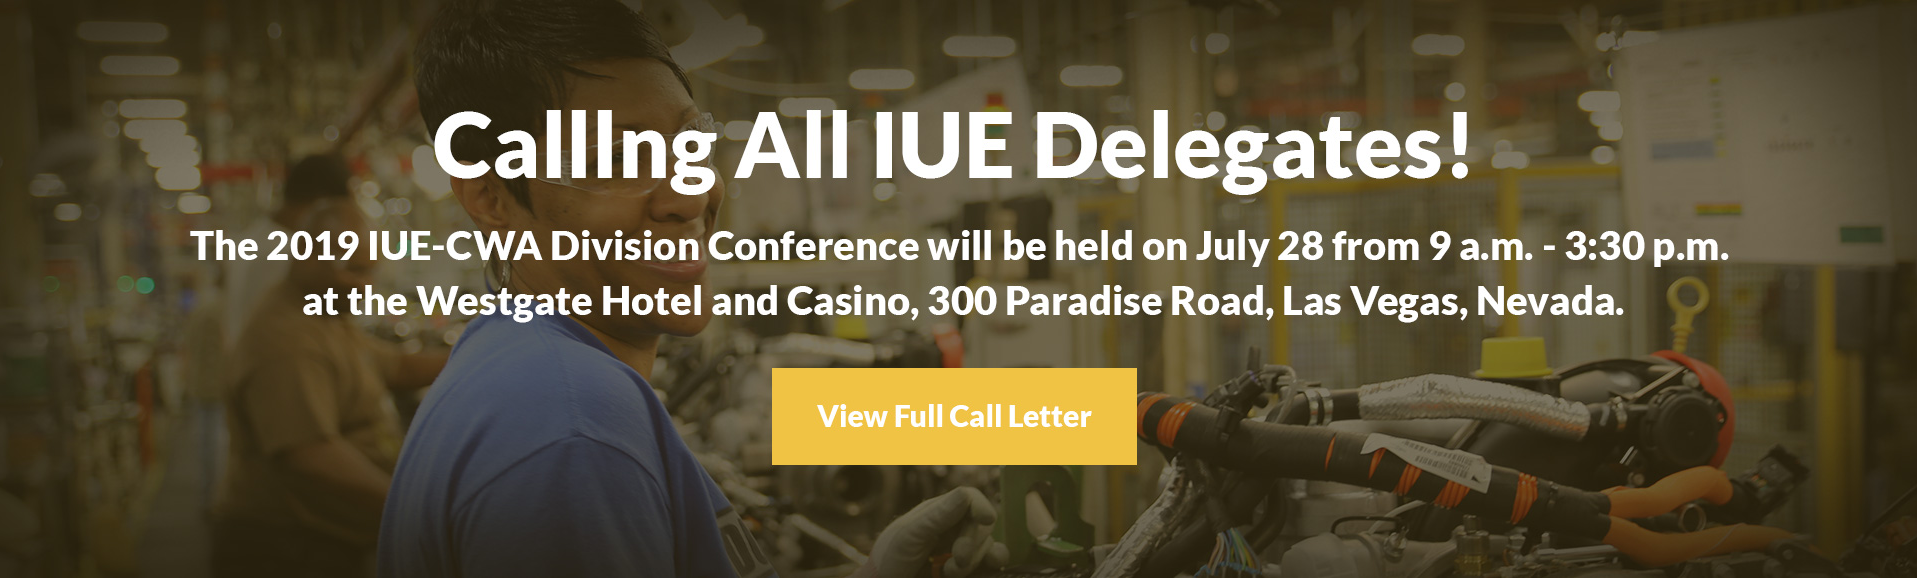 2019 IUE-CWA Division Conference Call Letter